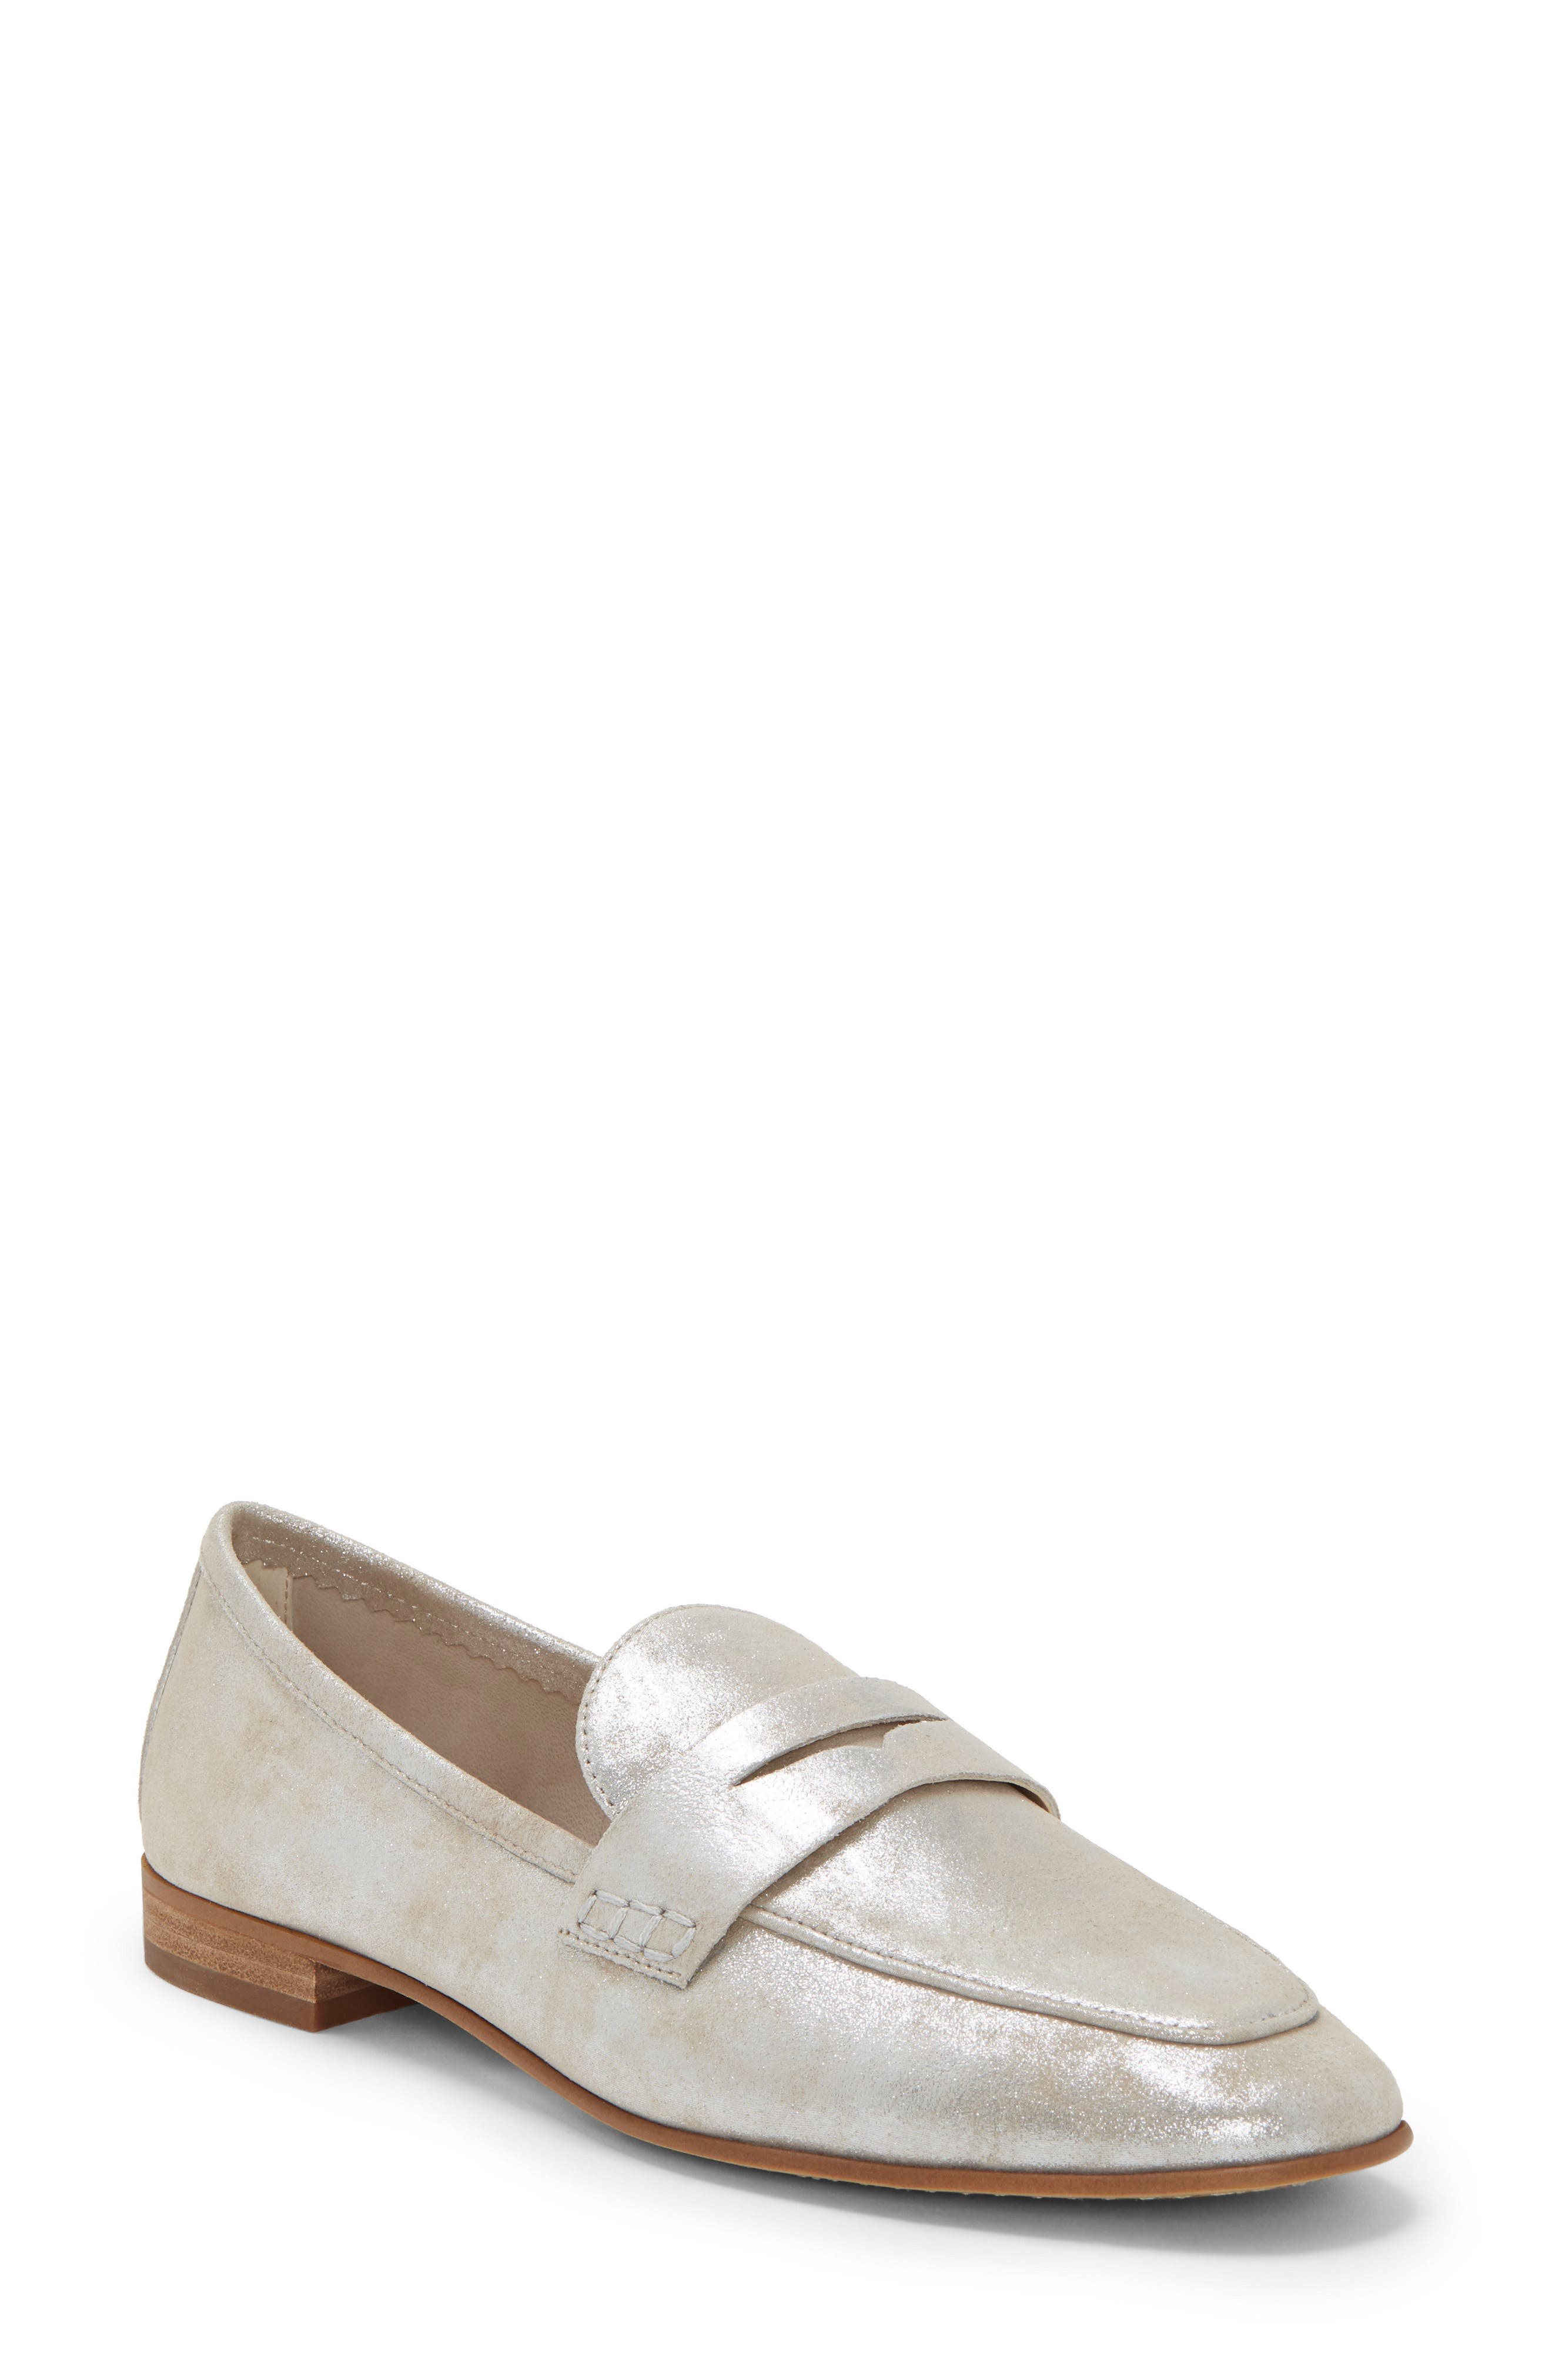 VINCE CAMUTO, Macinda Penny Loafer, Main thumbnail 1, color, SANDY SILVER SUEDE